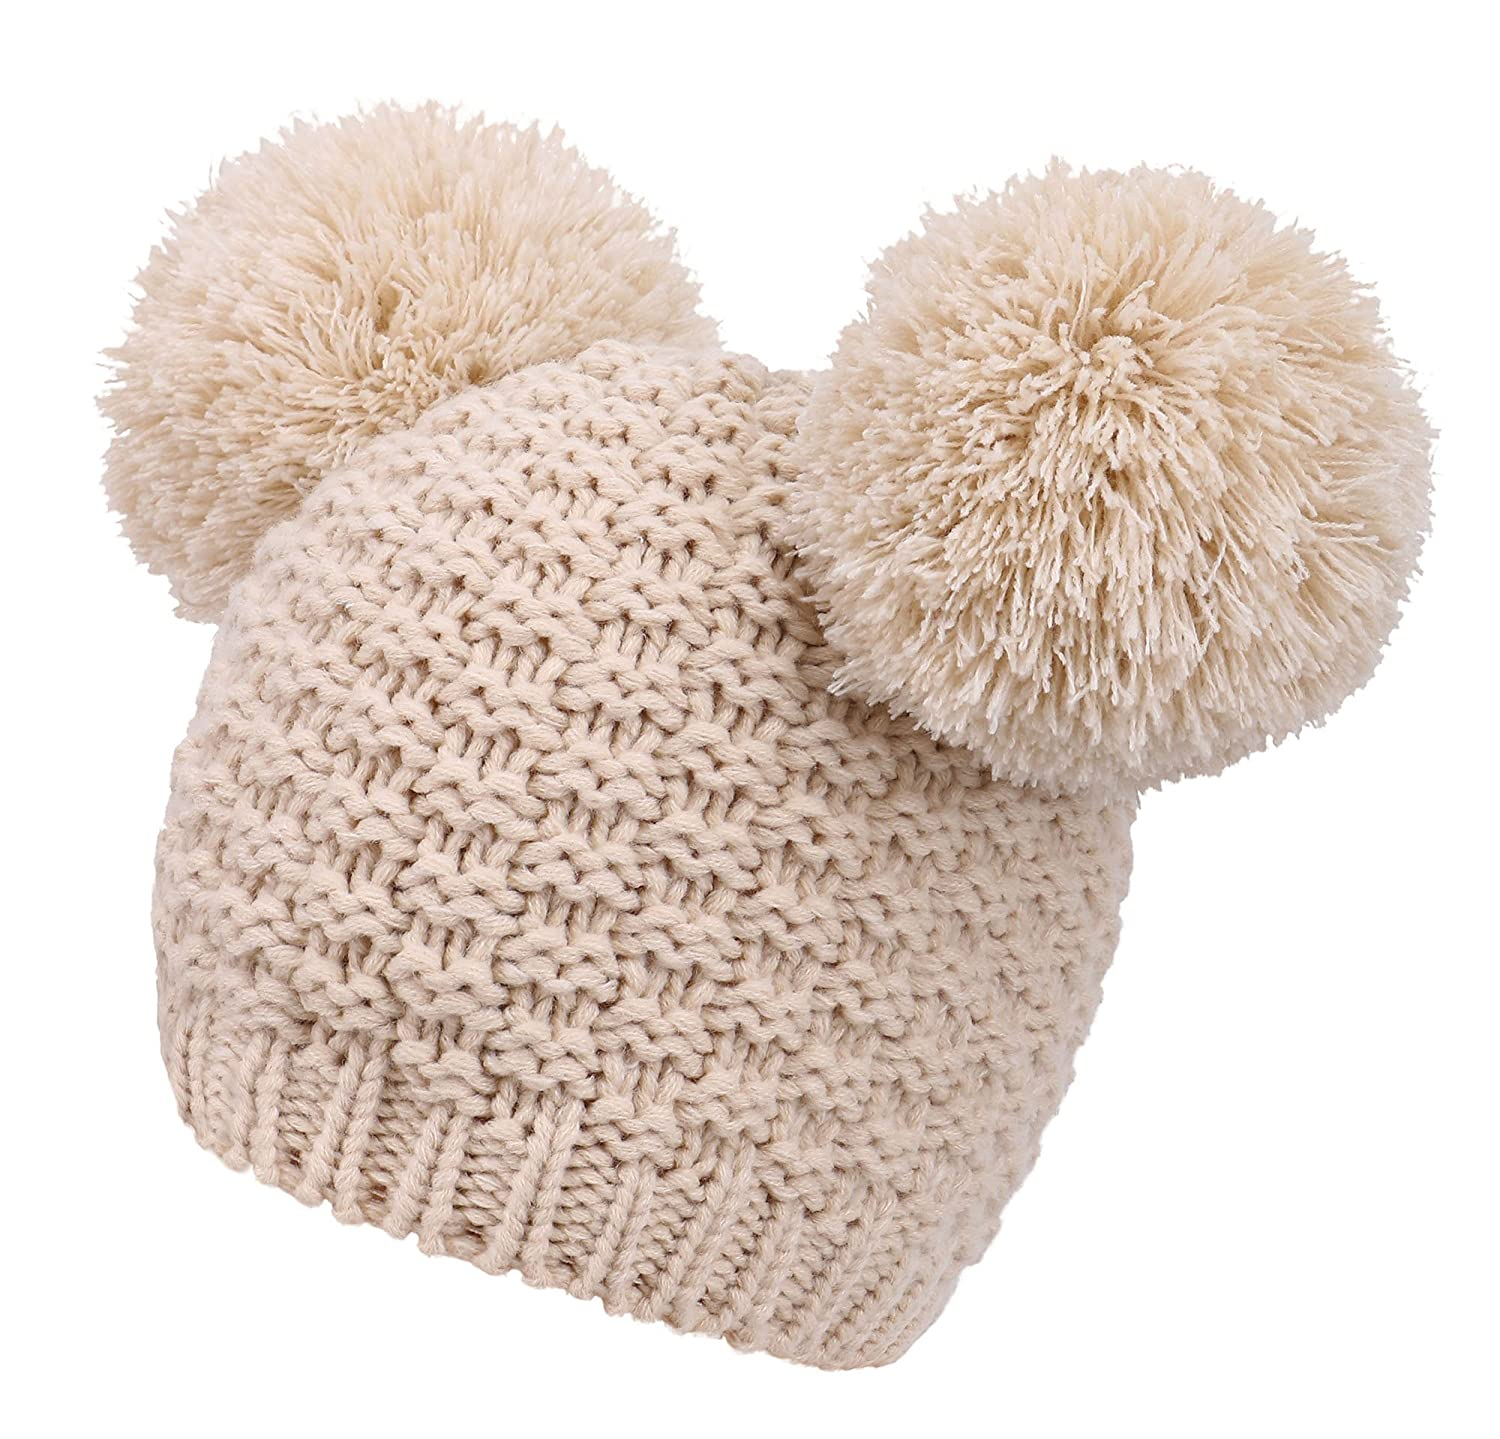 ed4760223b5 Women s Winter Chunky Knit Double Pom Pom Beanie Hat